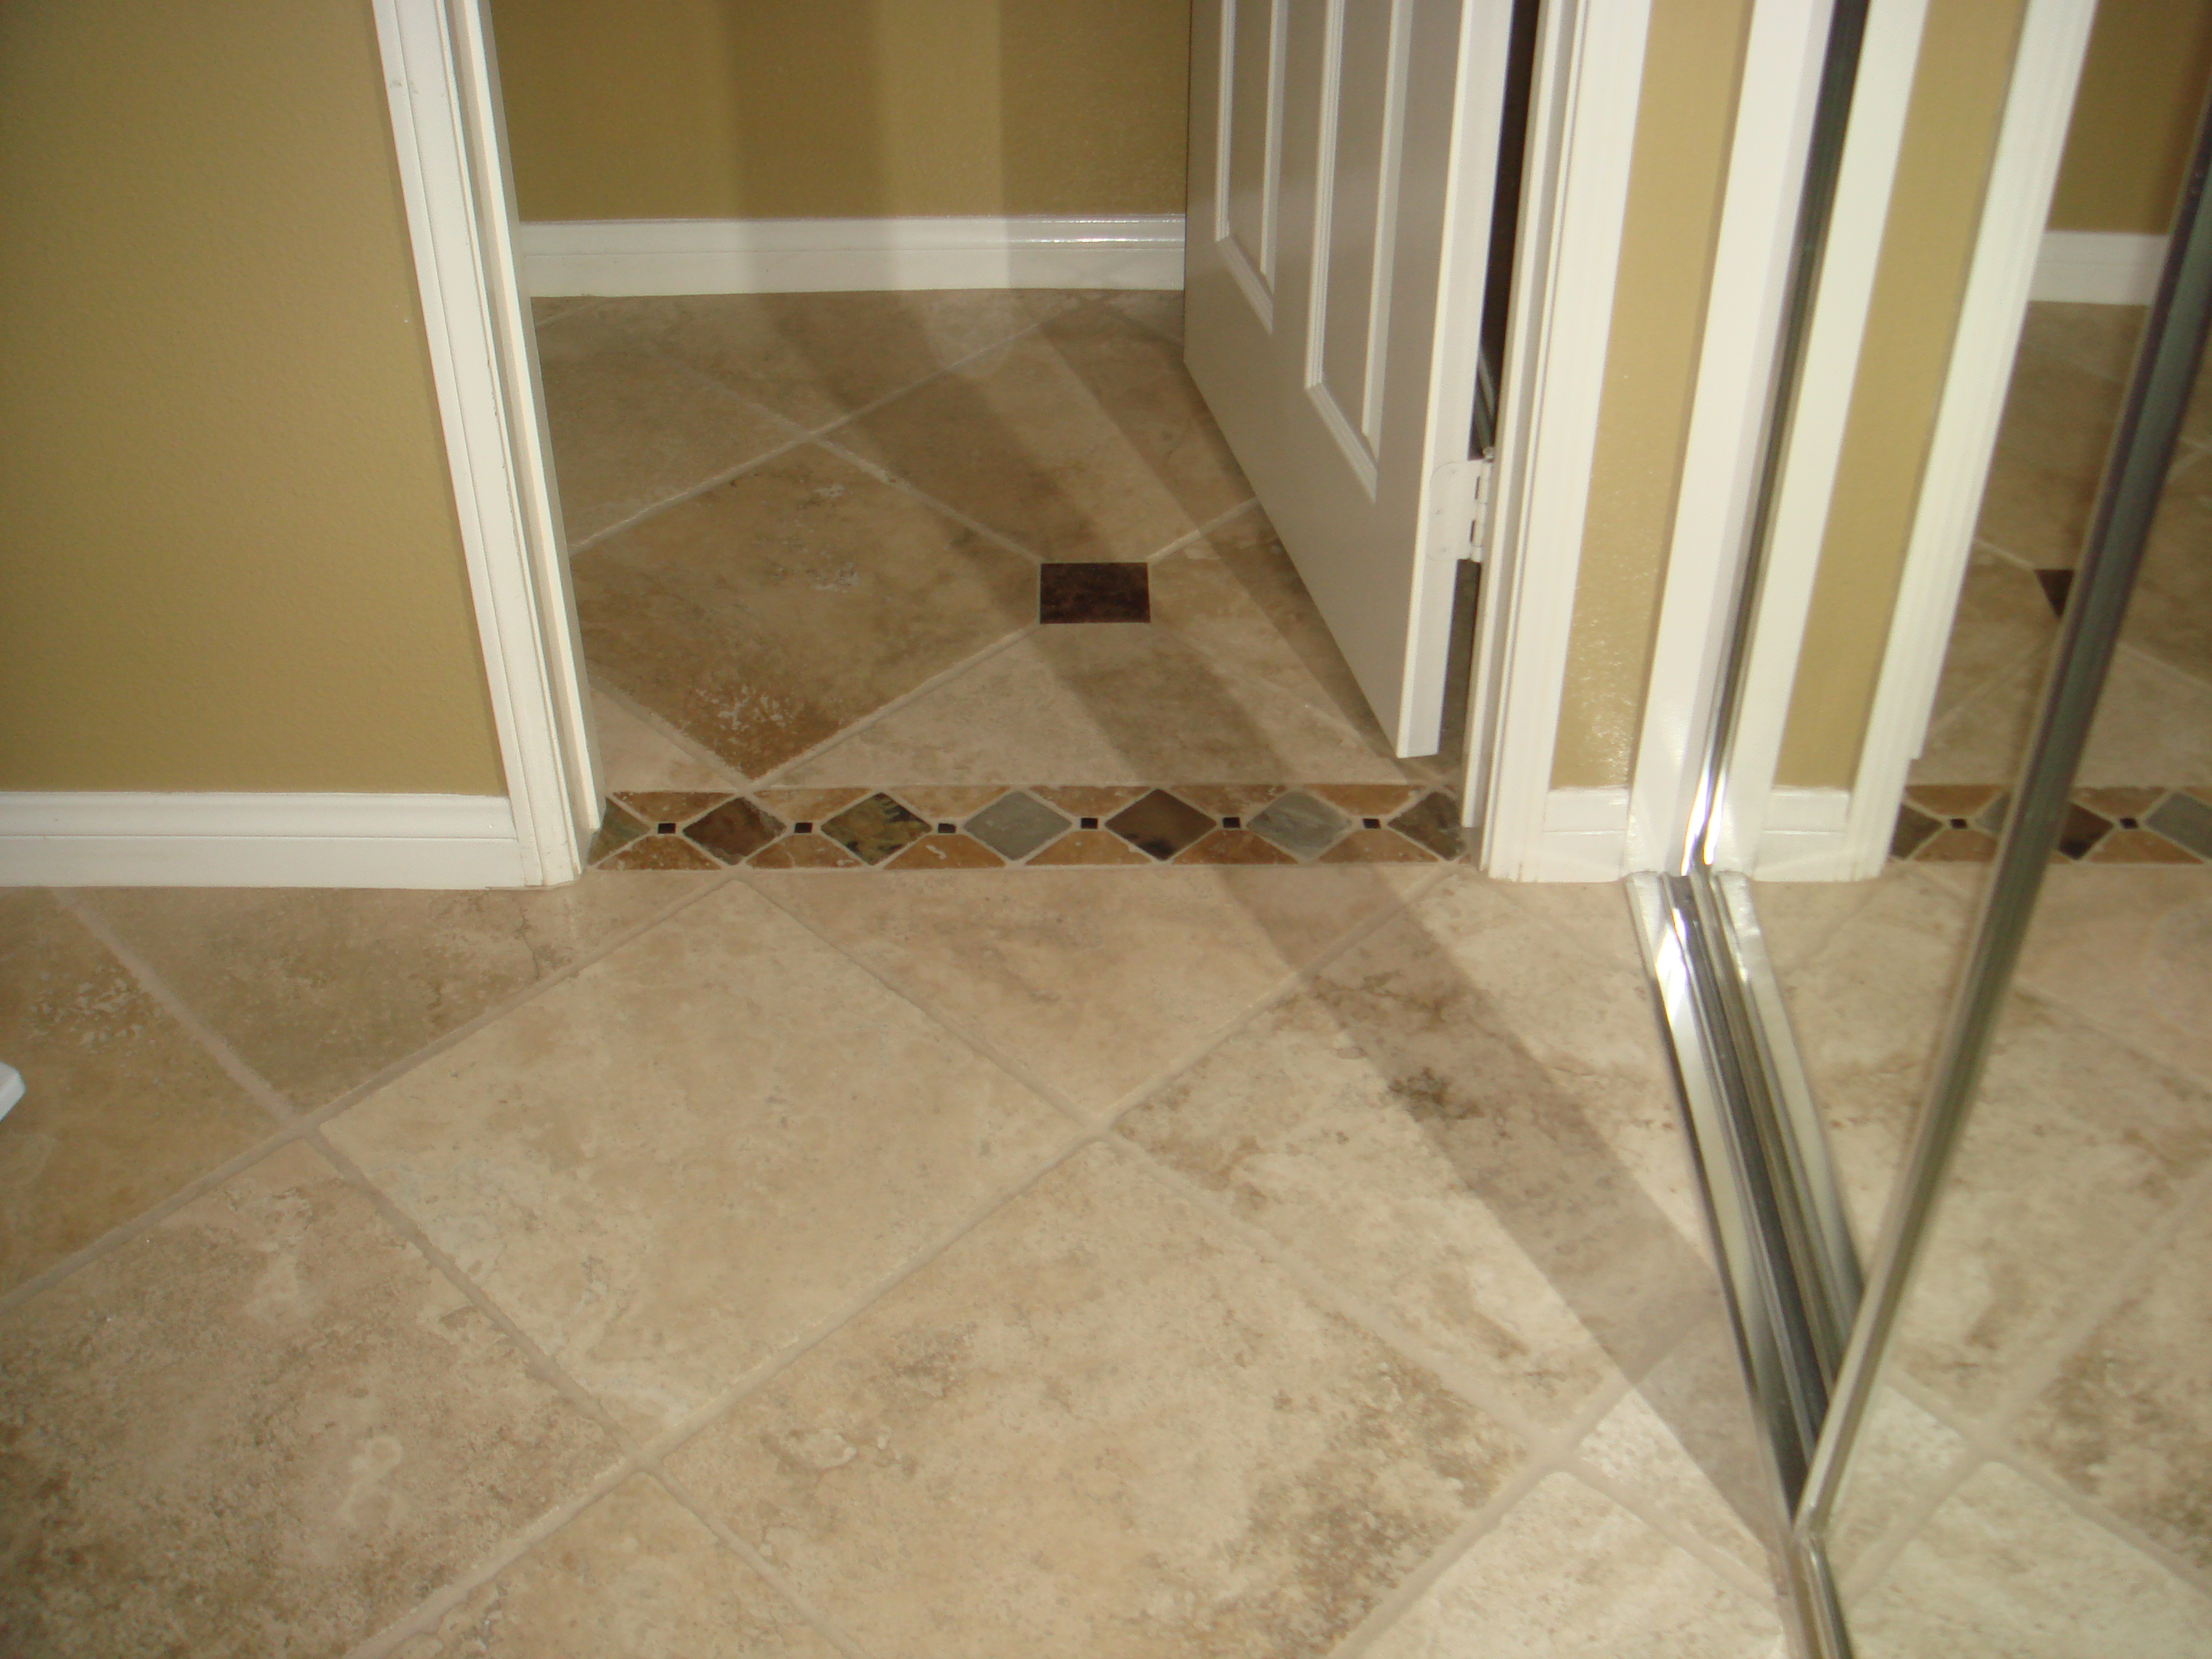 Installing Bathroom Floor Tile Large And Beautiful Photos Photo To Select Installing Bathroom